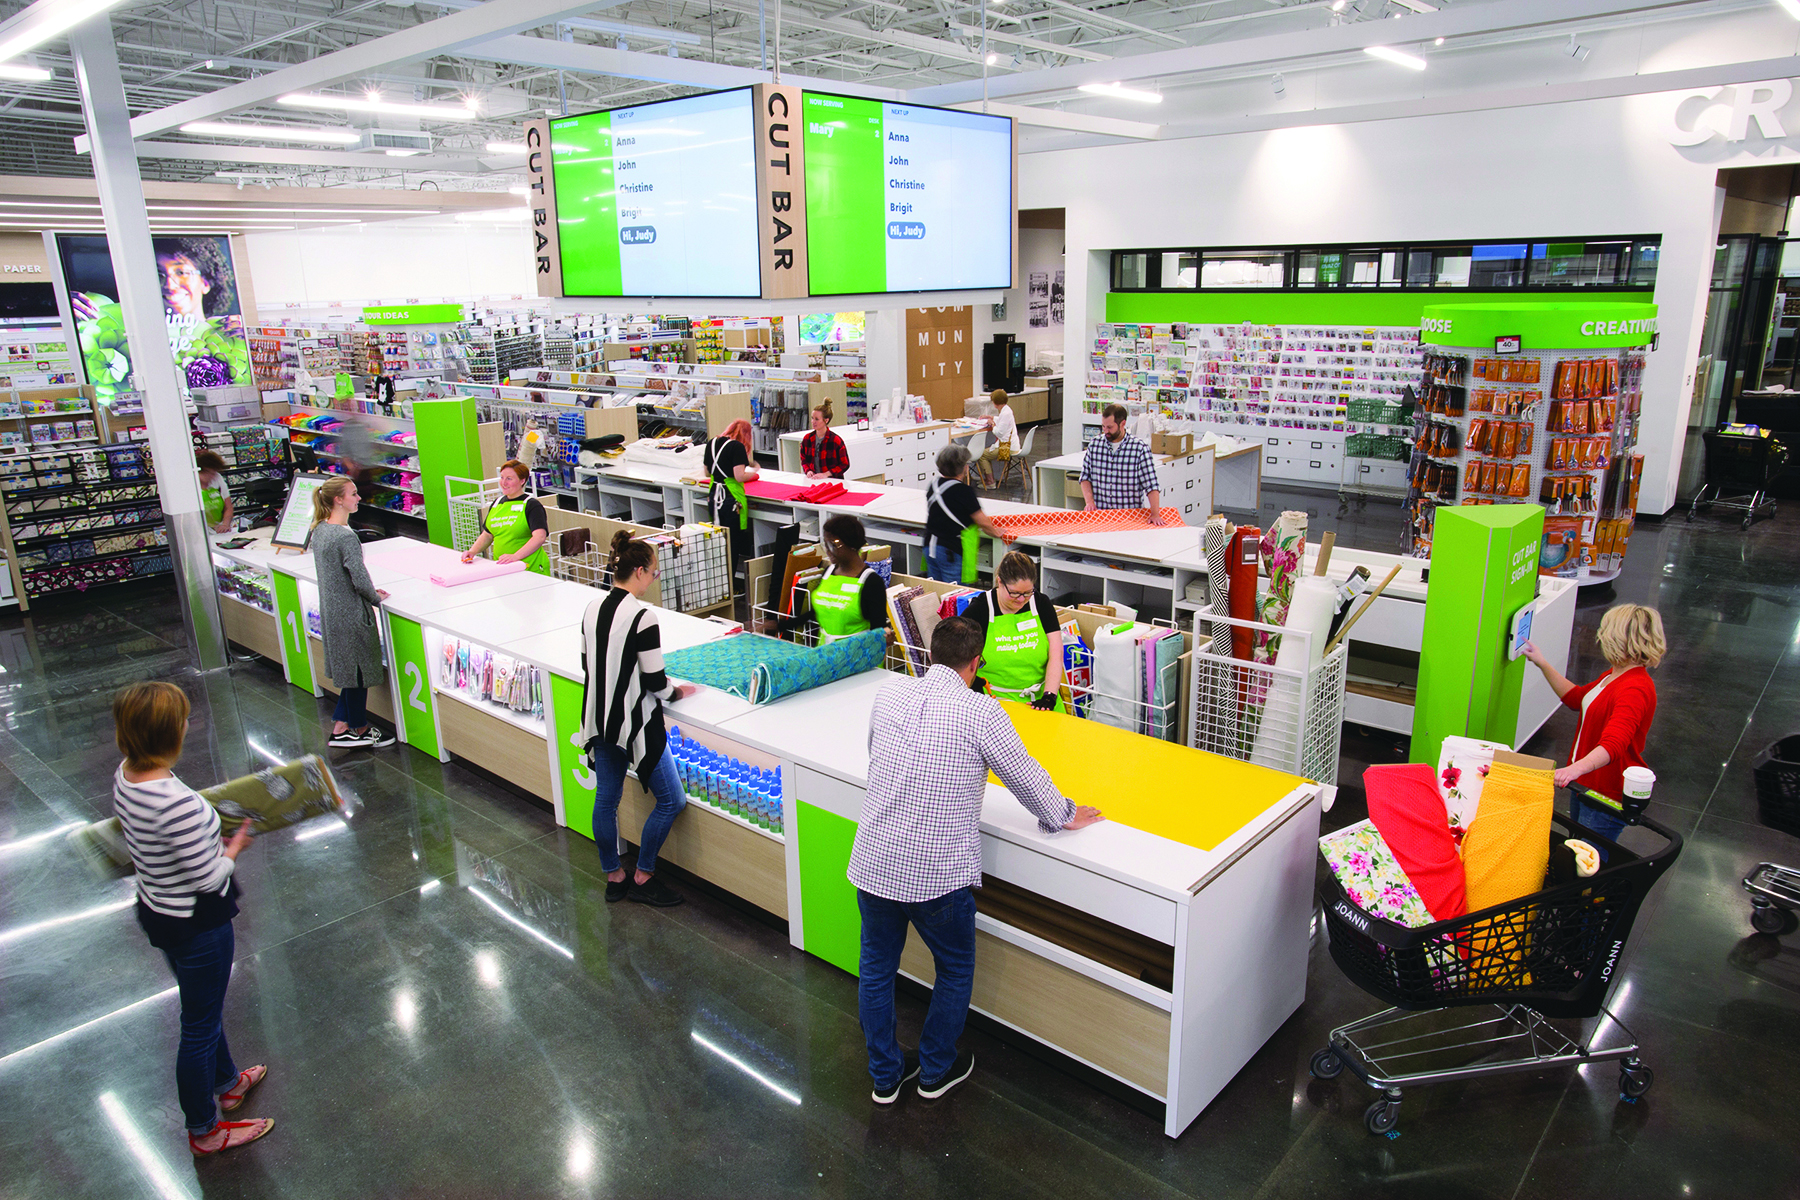 Shifts in consumer behavior prompt retailers to adapt m4hsunfo